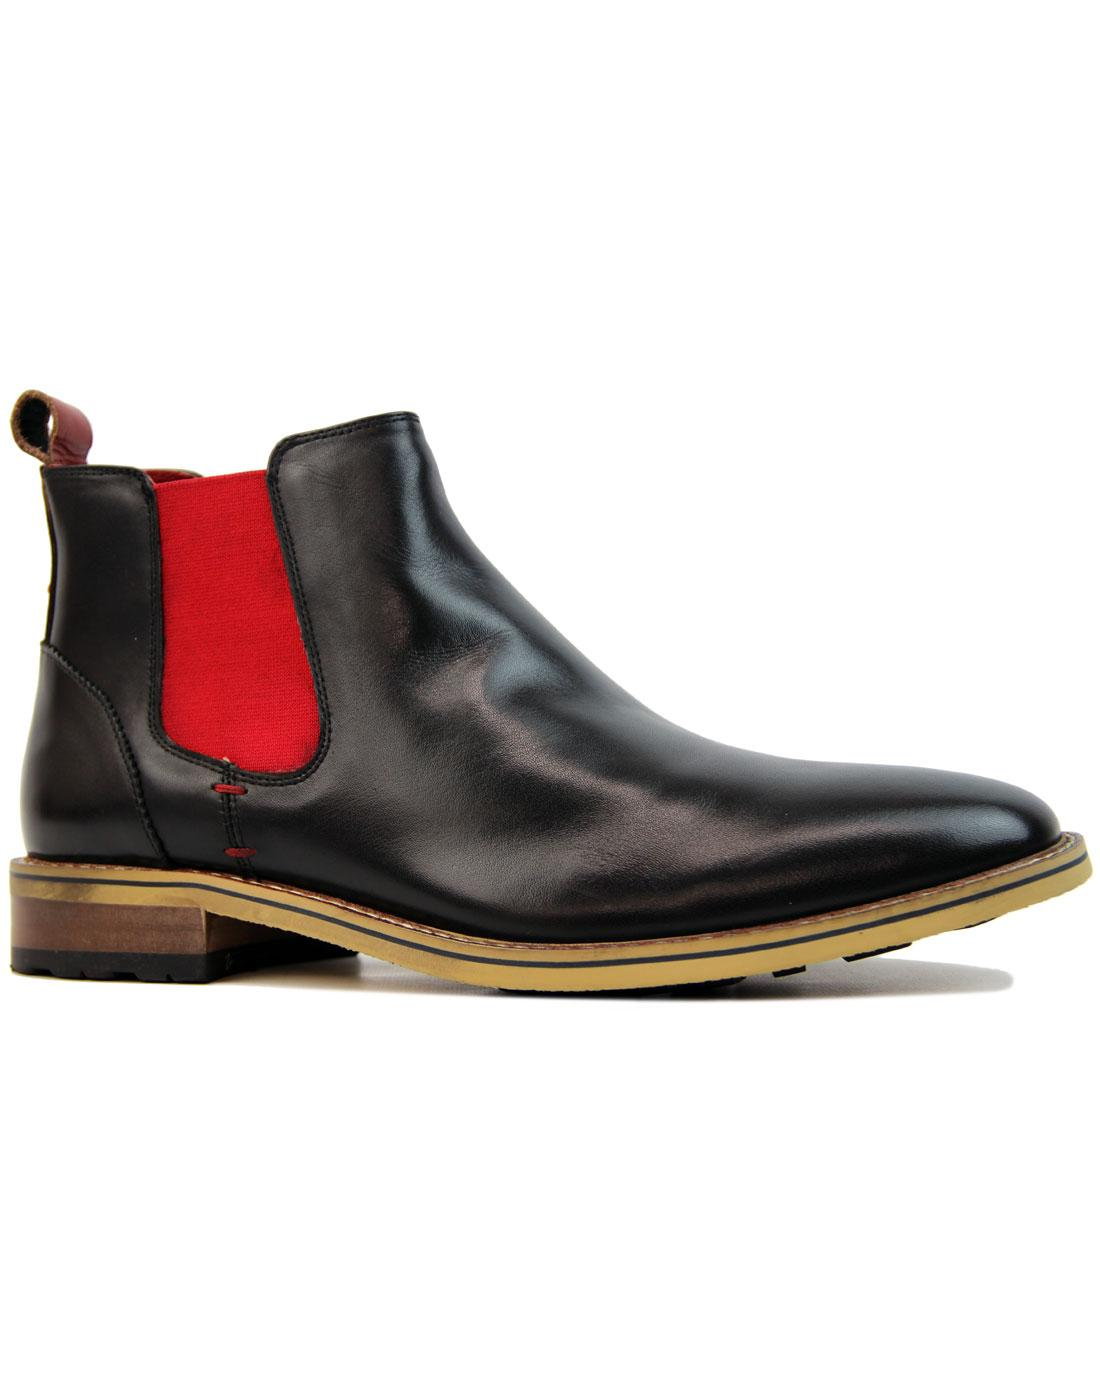 Lenny SERGIO DULETTI Mod Red Gusset Chelsea Boots